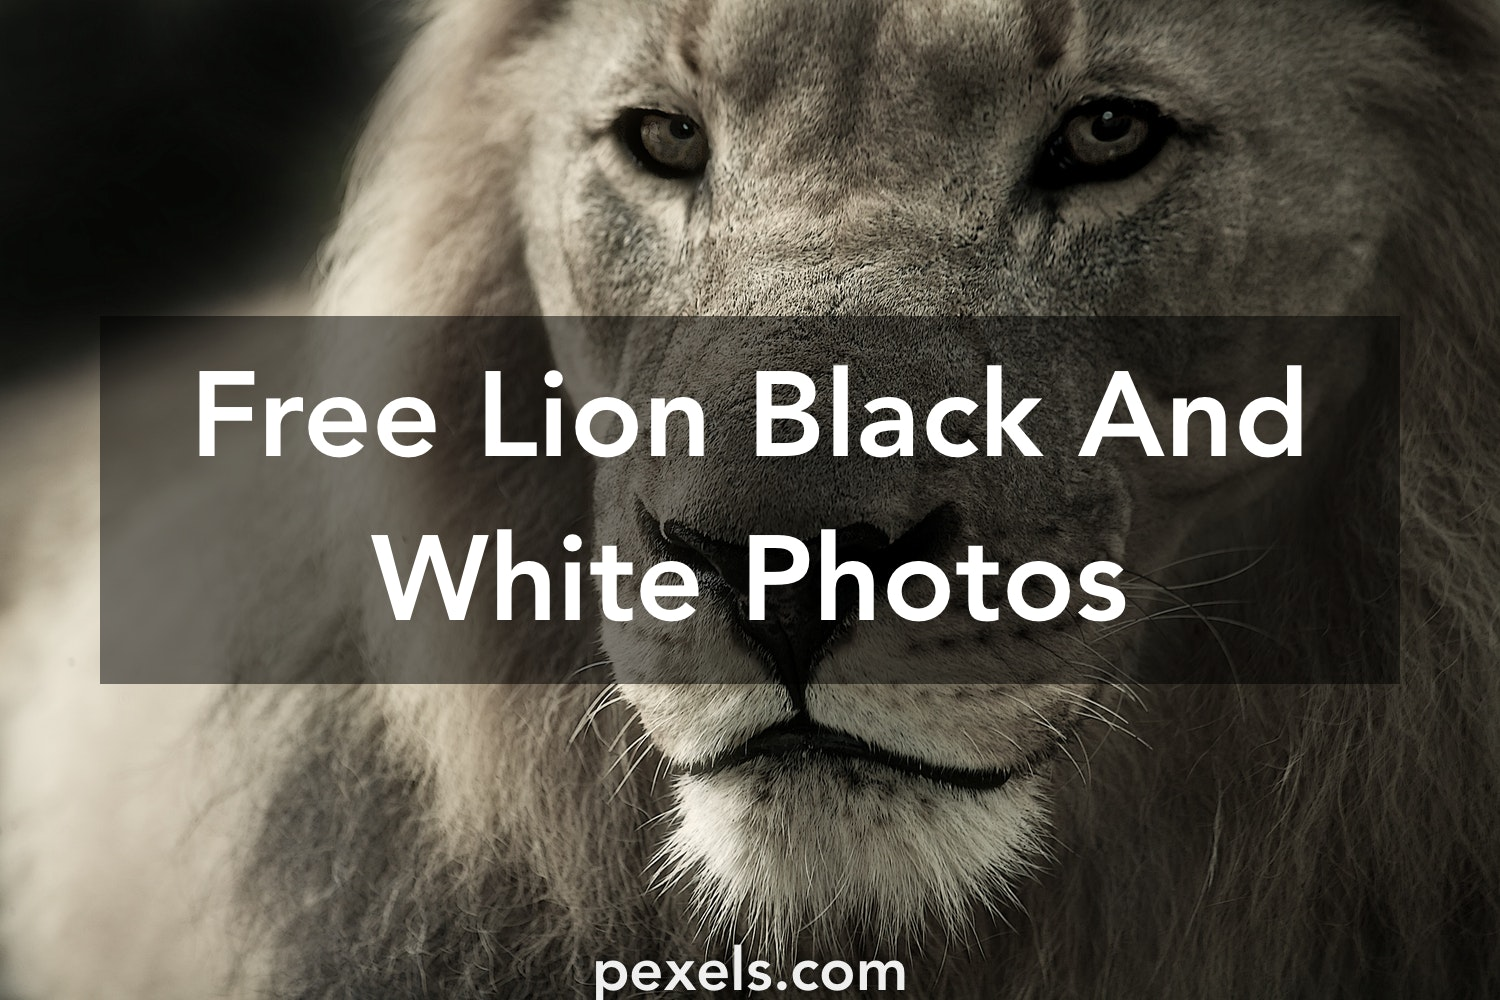 1000 beautiful lion black and white photos · pexels · free stock photos